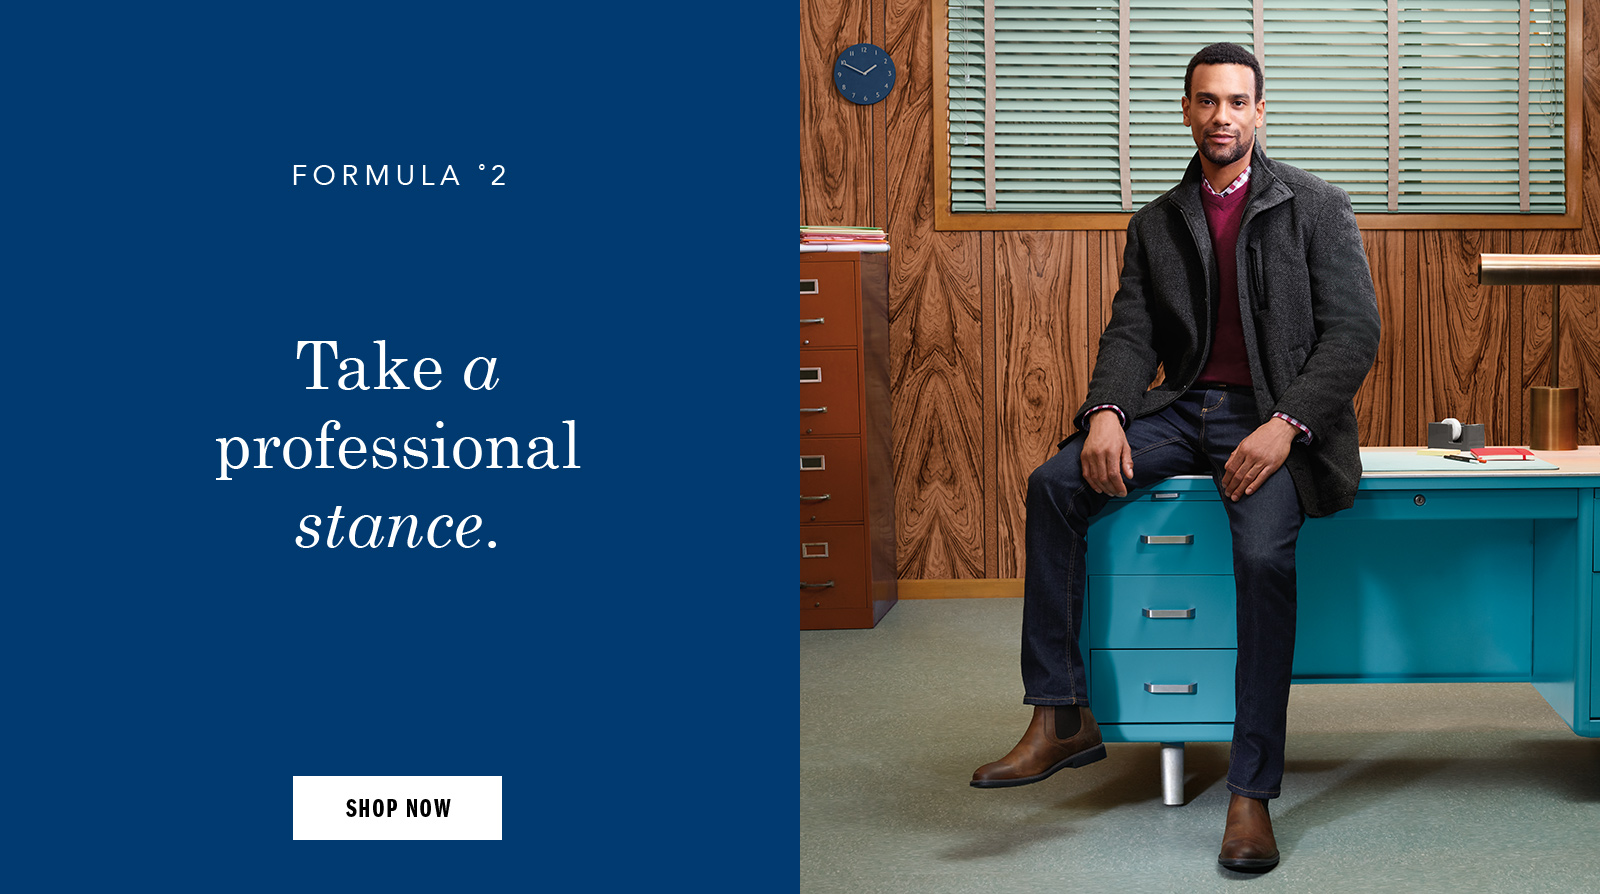 Take a professional stance - Shop Men's Boots and Apparel